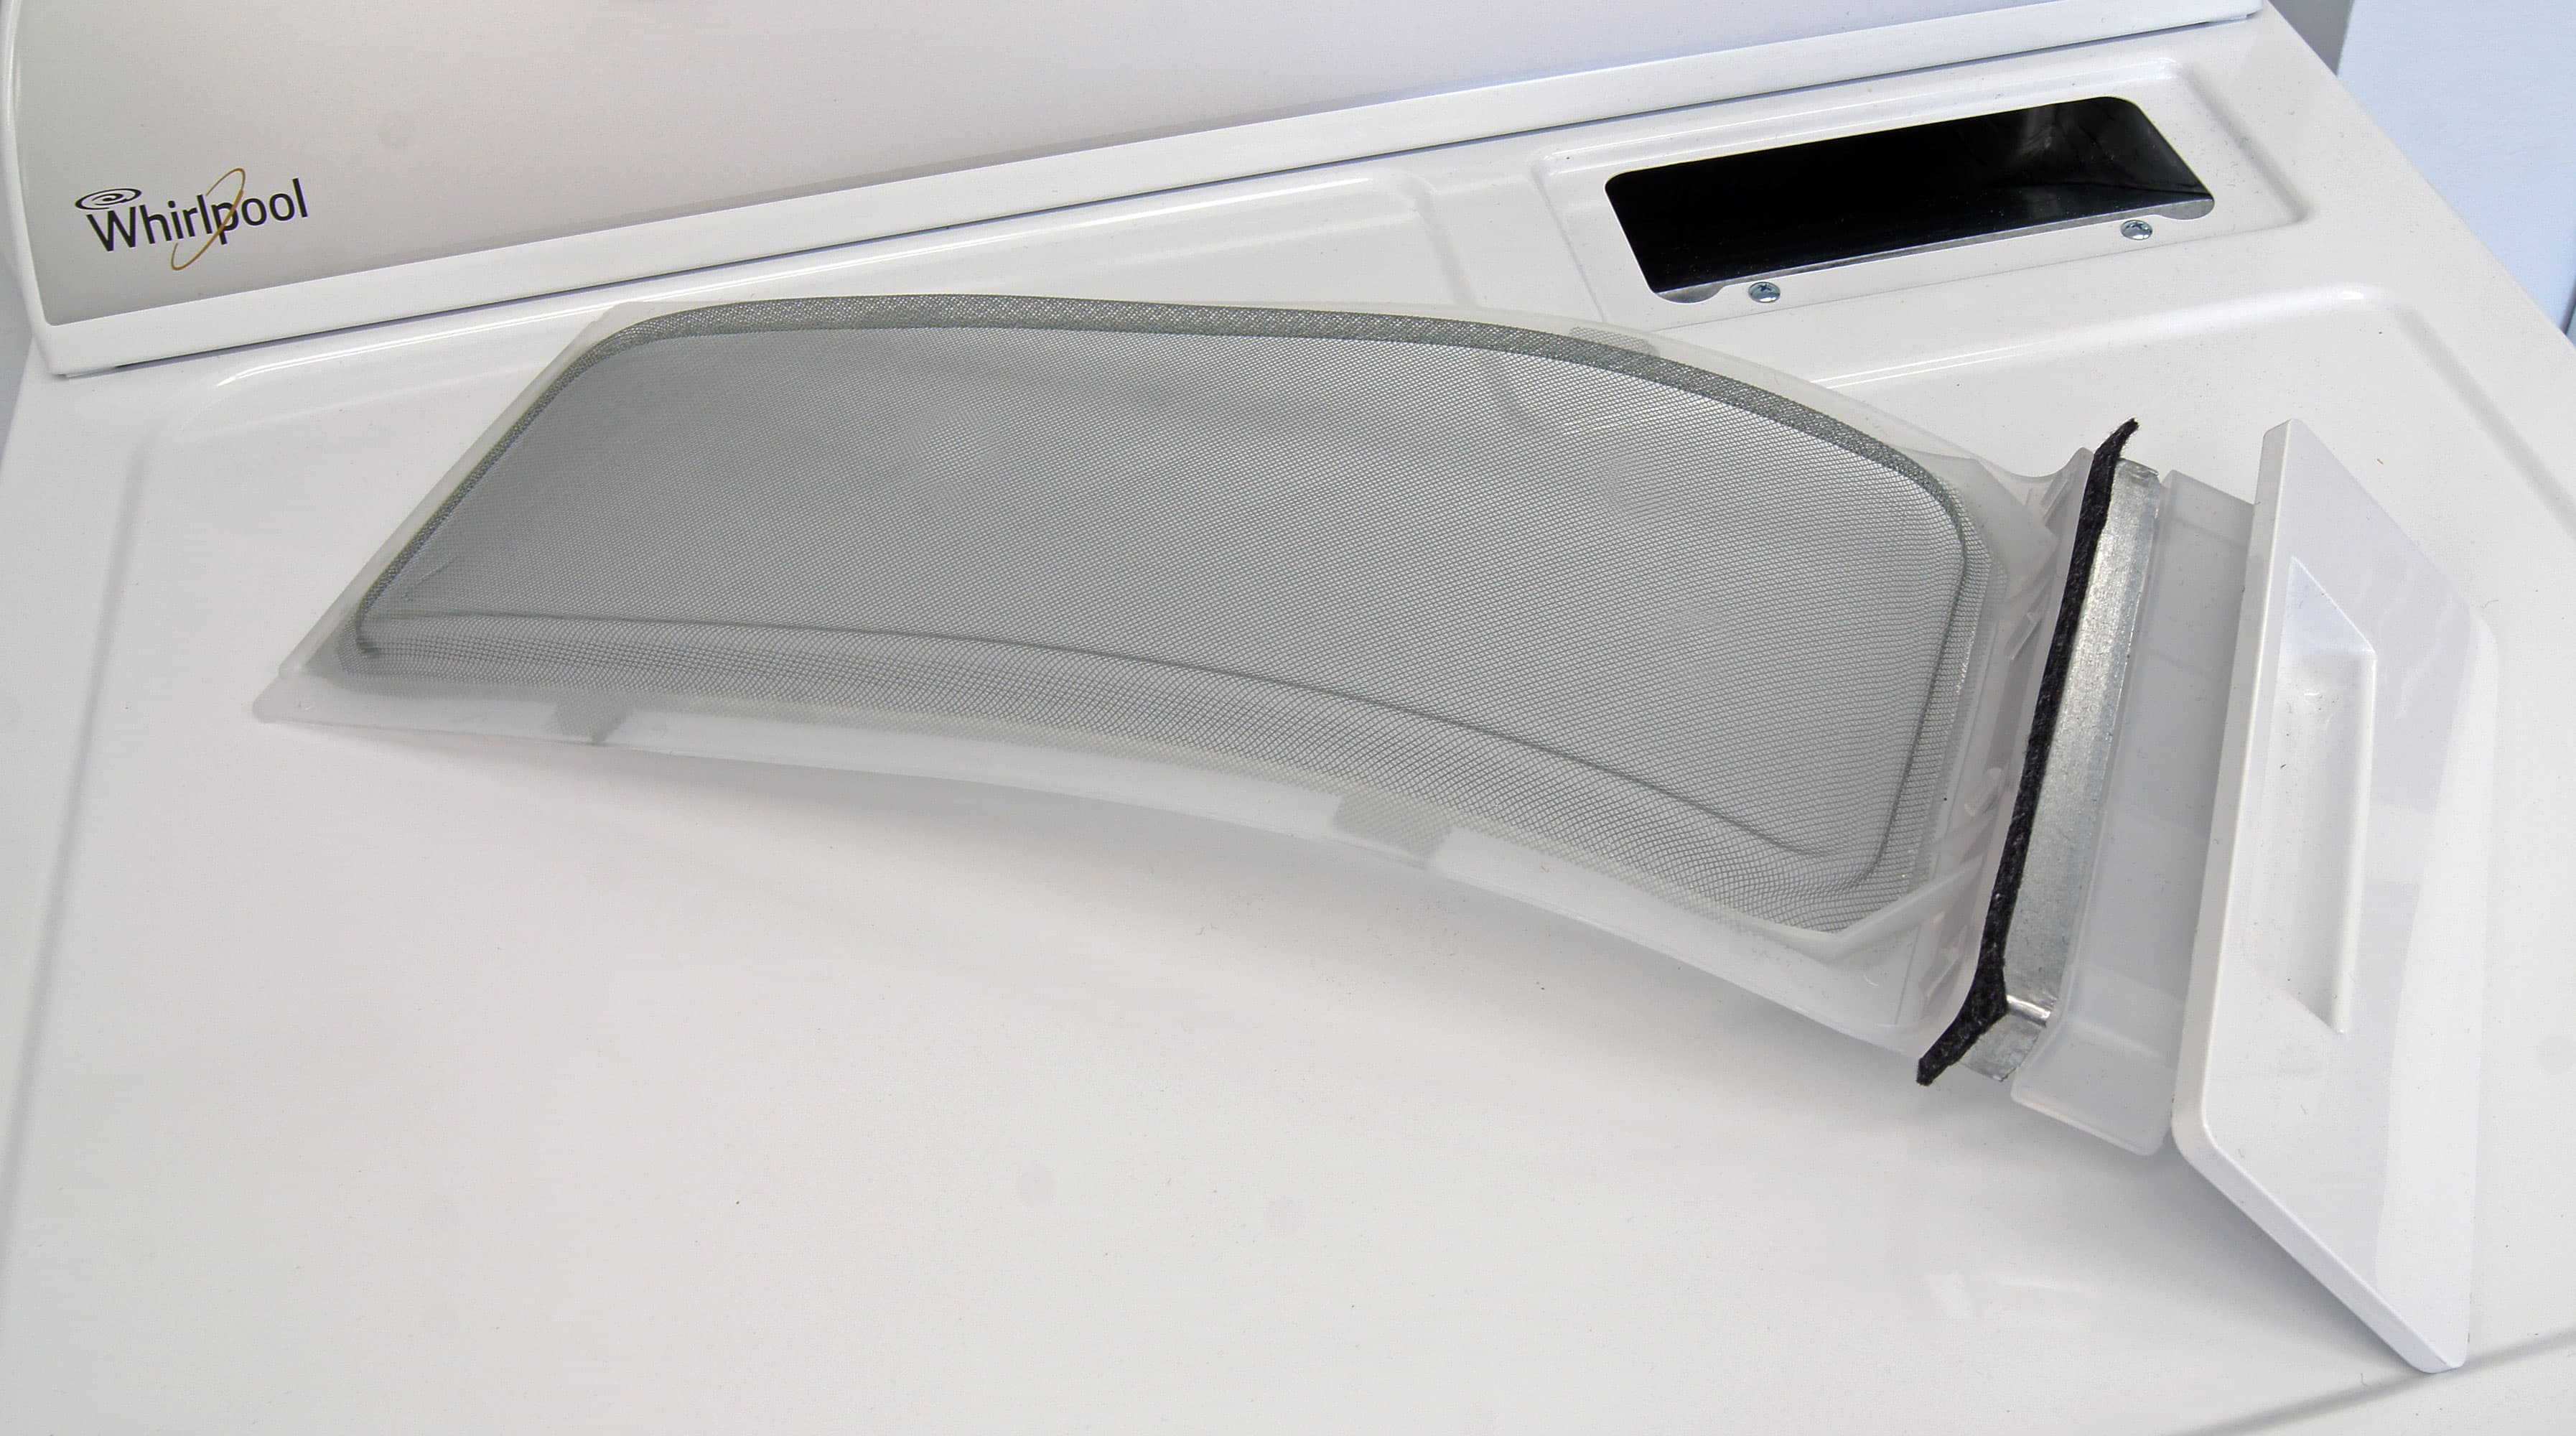 Pull-out lint traps like the one on the Whirlpool WED4915EW are easy to clean, but can spread lint around your laundry room if the trash bin isn't nearby.